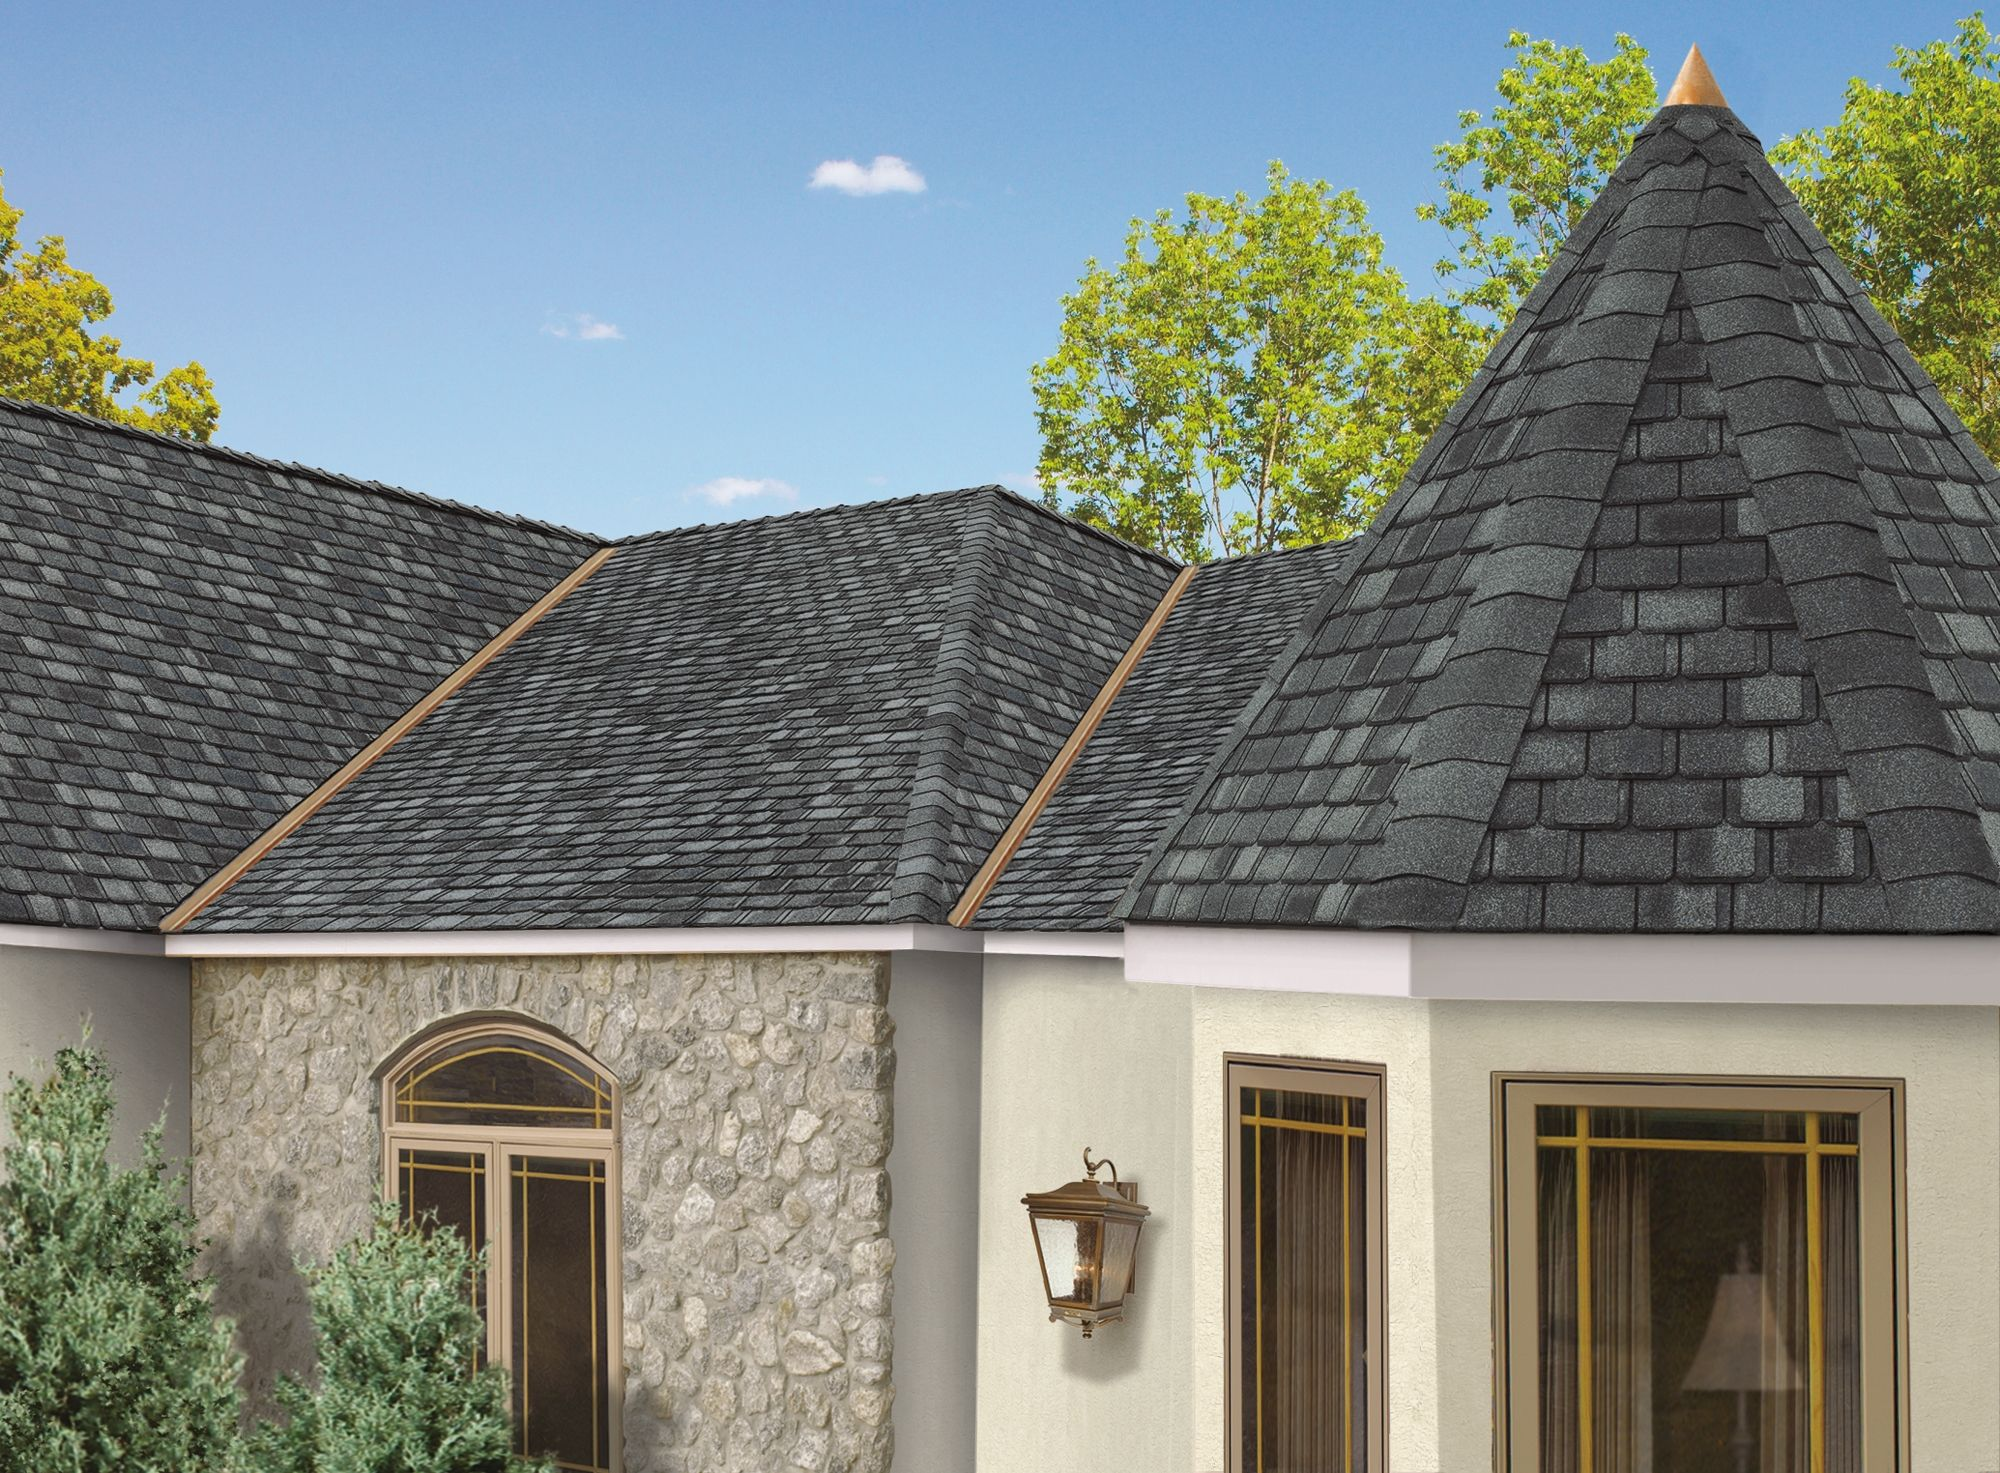 Quality roofing job begins before the shingles go on home remodeling - See Photos Of Camelot Shingles Beautifully Installed On Typical American Homes Browse Our Full Photo Gallery Of Designer Shingles